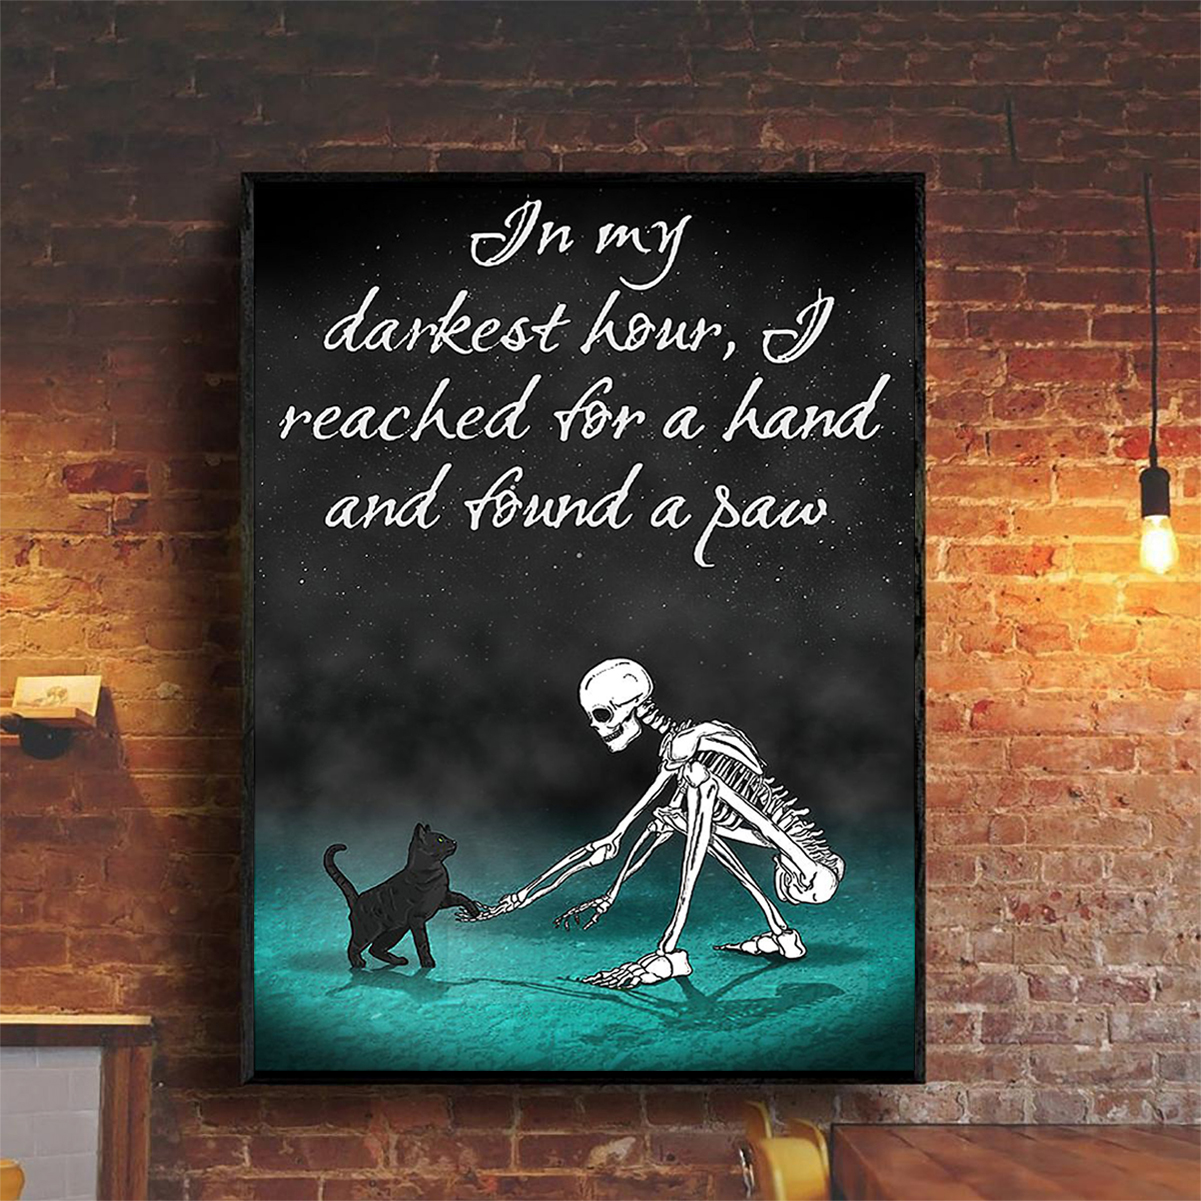 Skull In my darkest hour I reached for a hand and found a paw poster A2